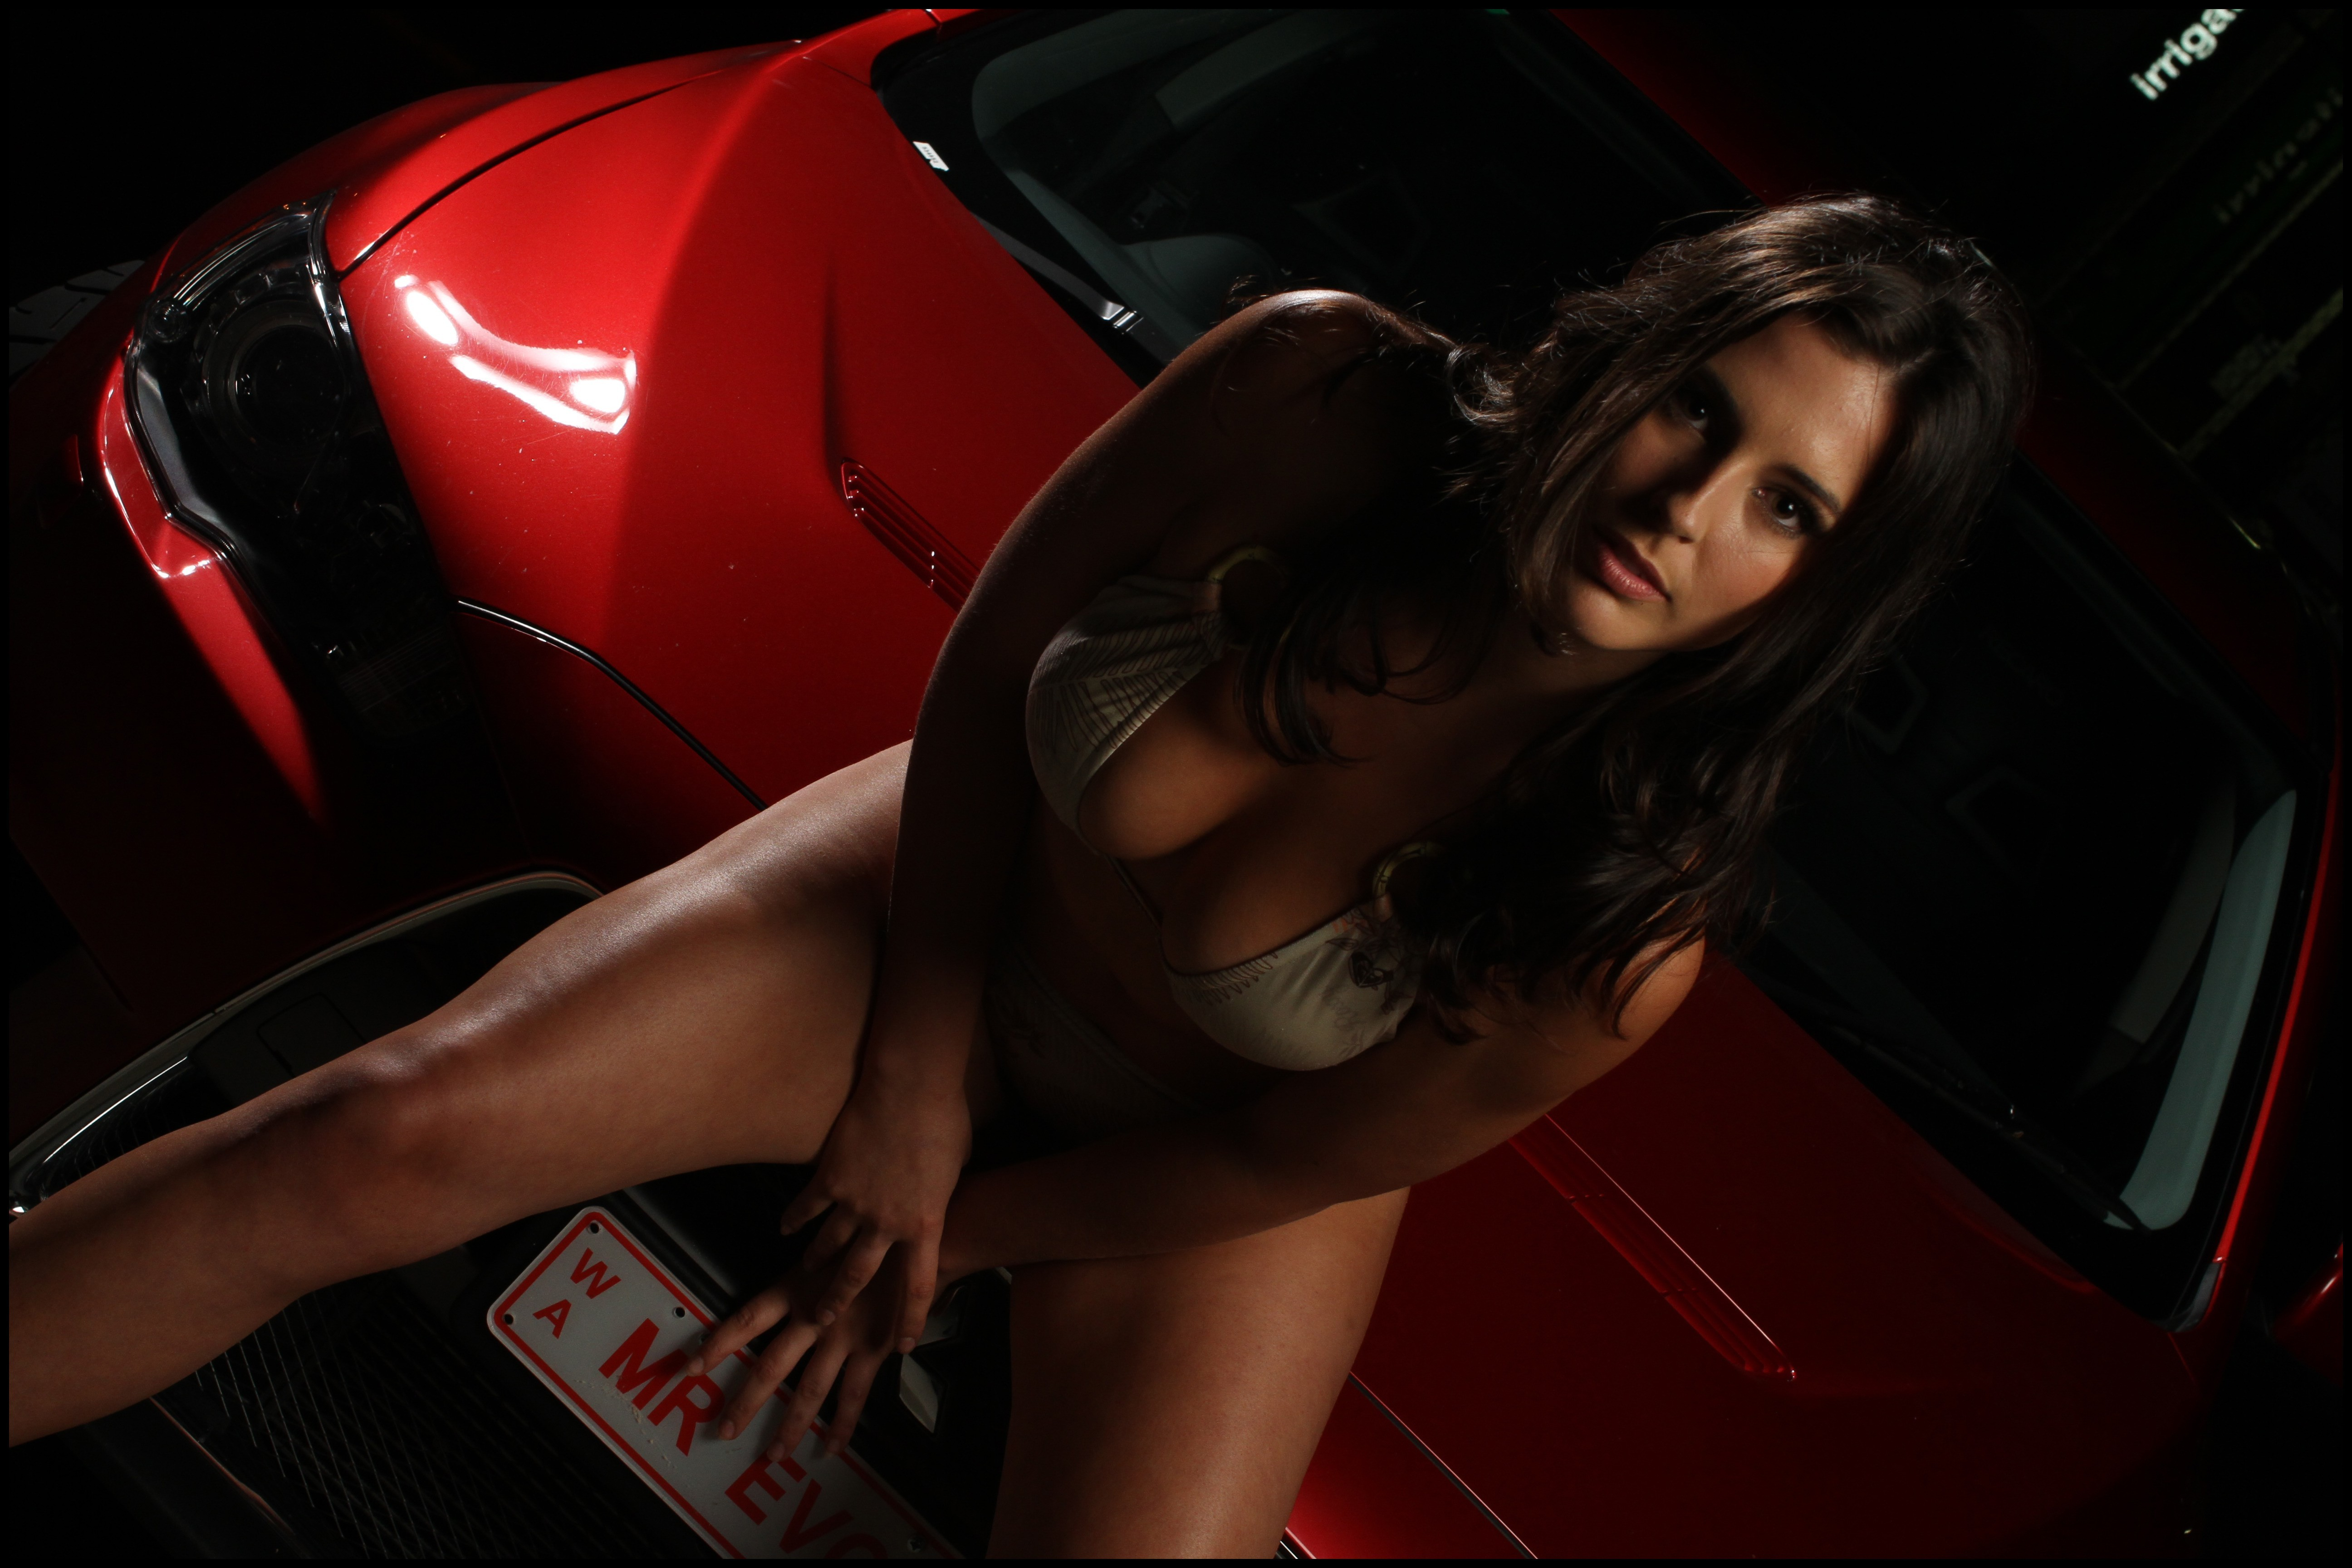 woman cars cleavage girls